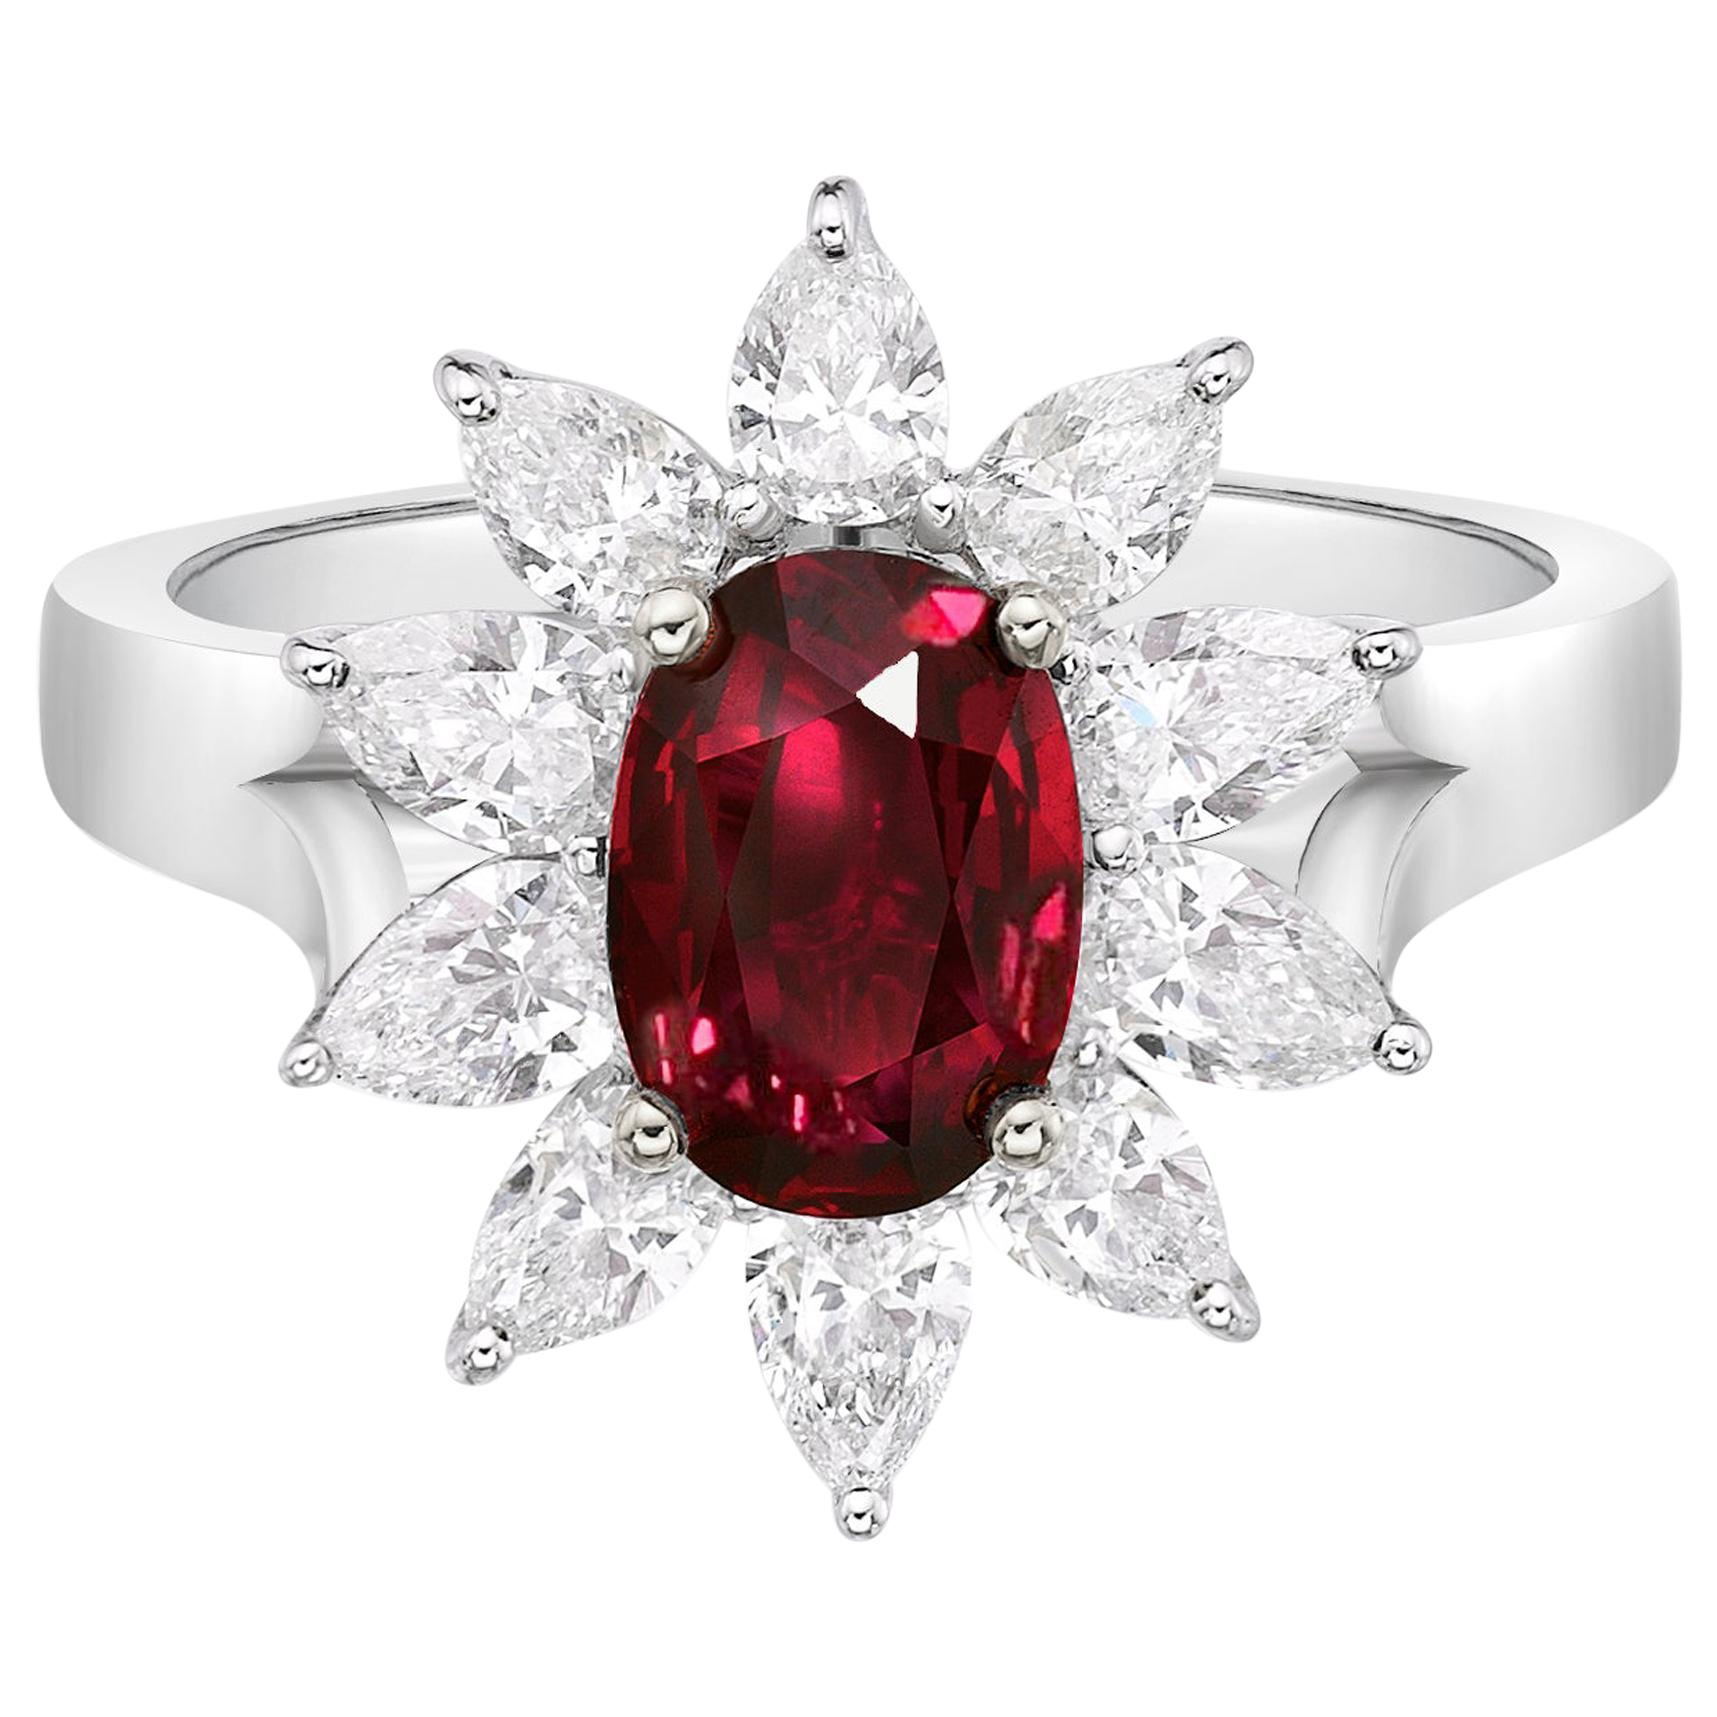 2.02 Carat Pigeon Blood Vivid Red Ruby GRS Certified Unheated Diamond Ring